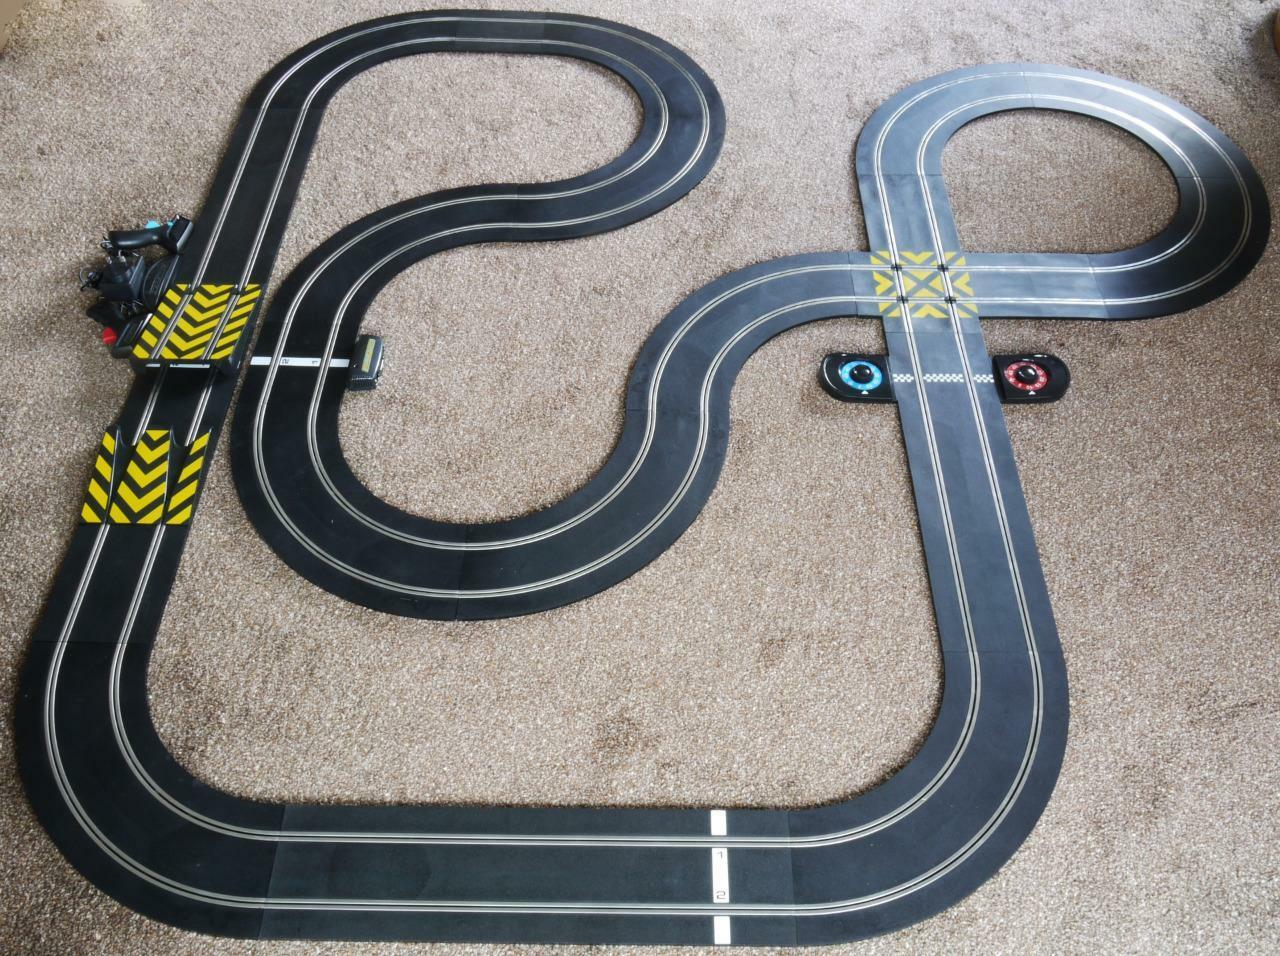 Scalextric mise en page Crossover tangentes courbes courbes courbes Lap Counter Leap rampe transformateur f7b747